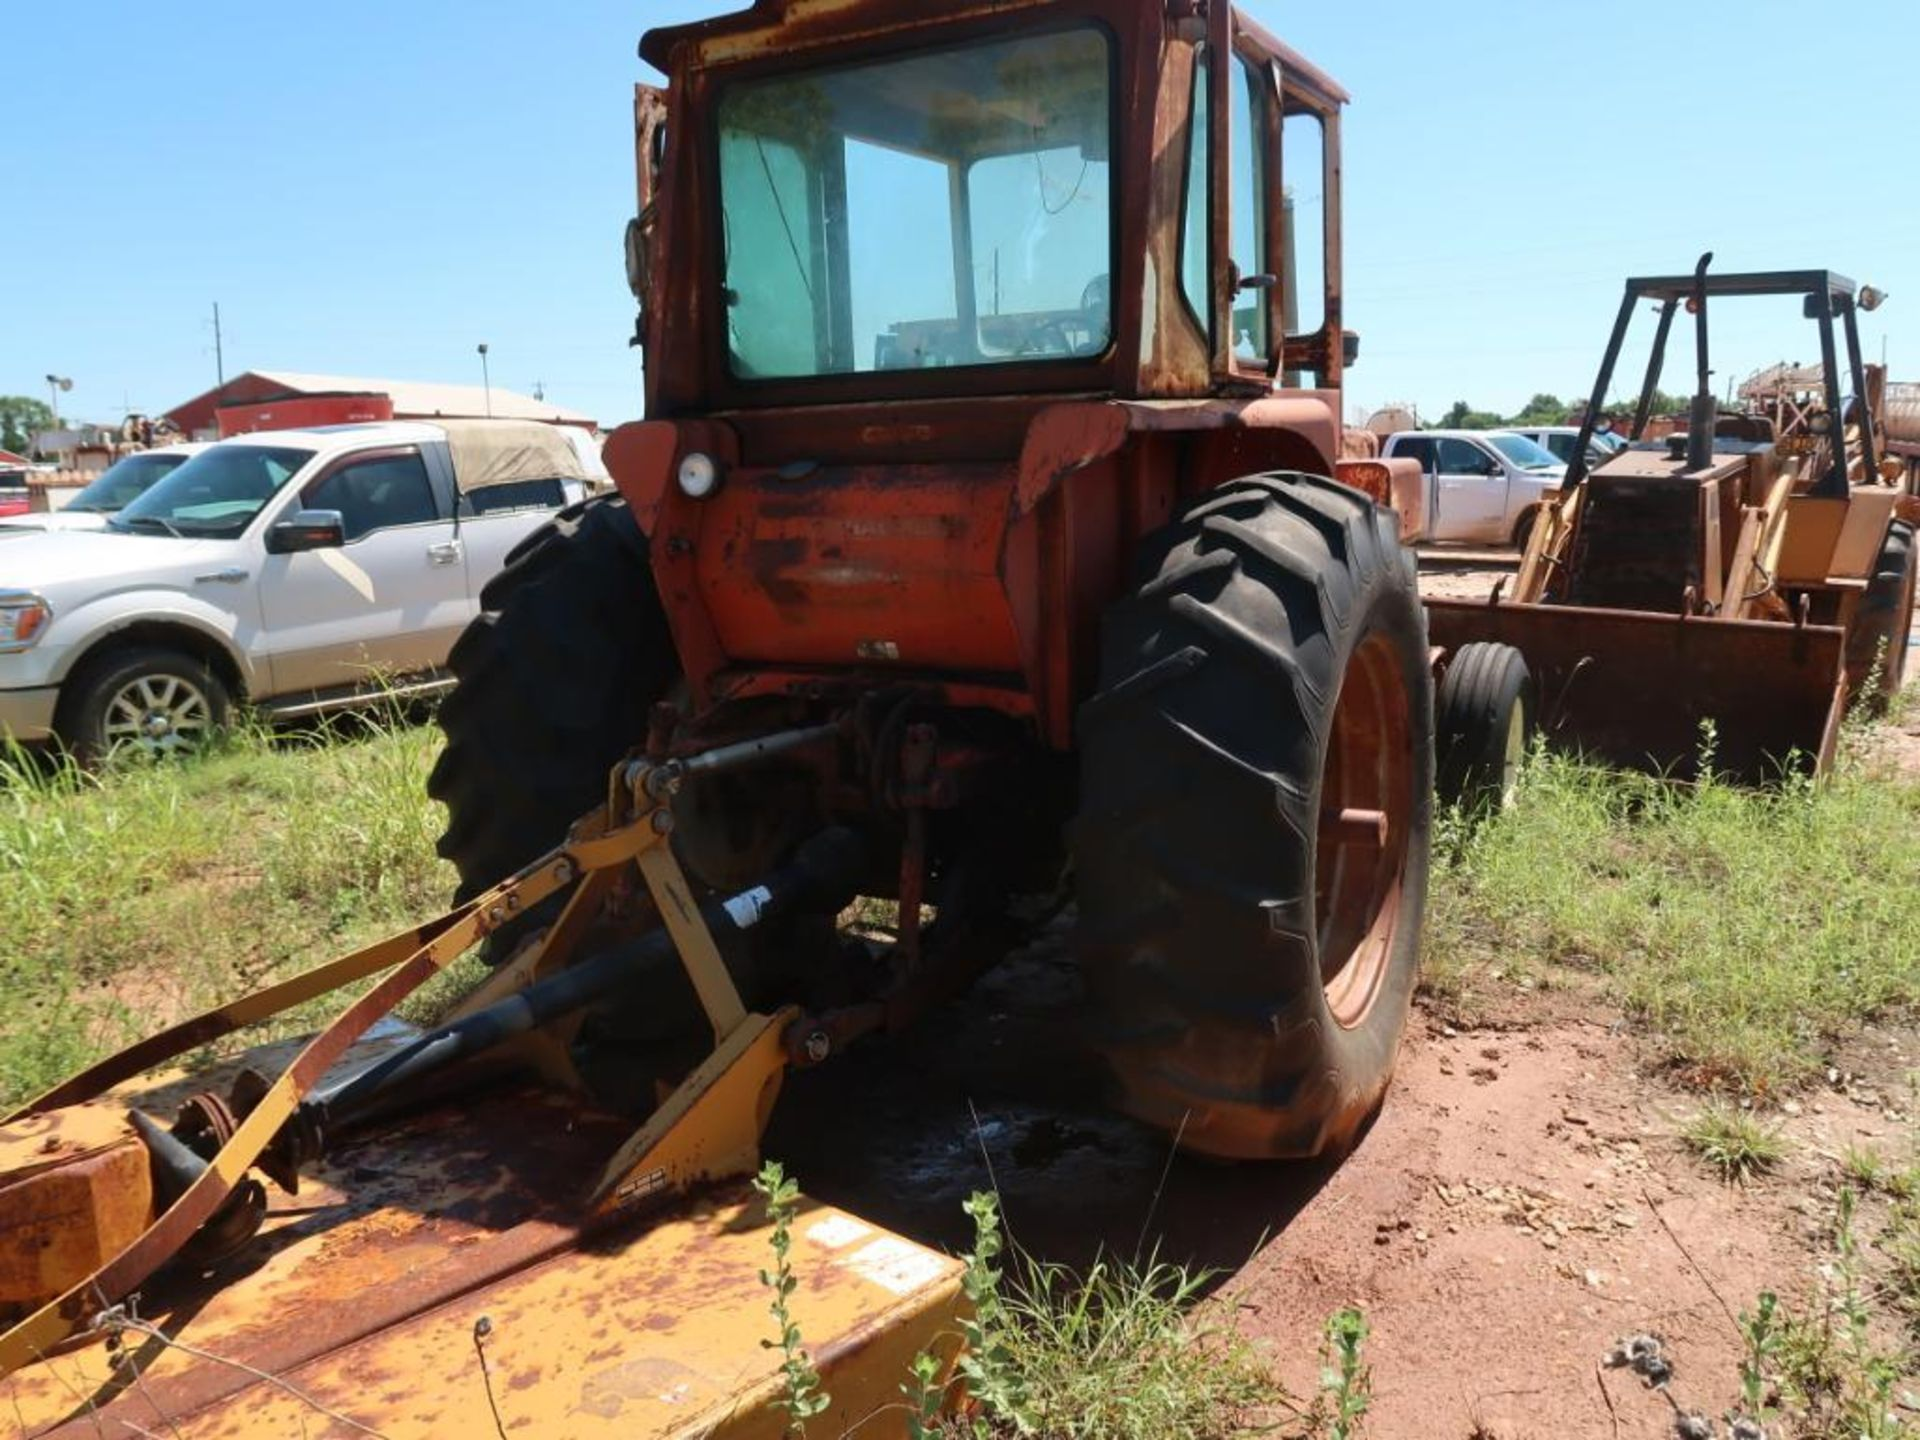 Lot 238 - Allis Chalmers Tractor Model 190XT, with 72 in. Mower Attachment